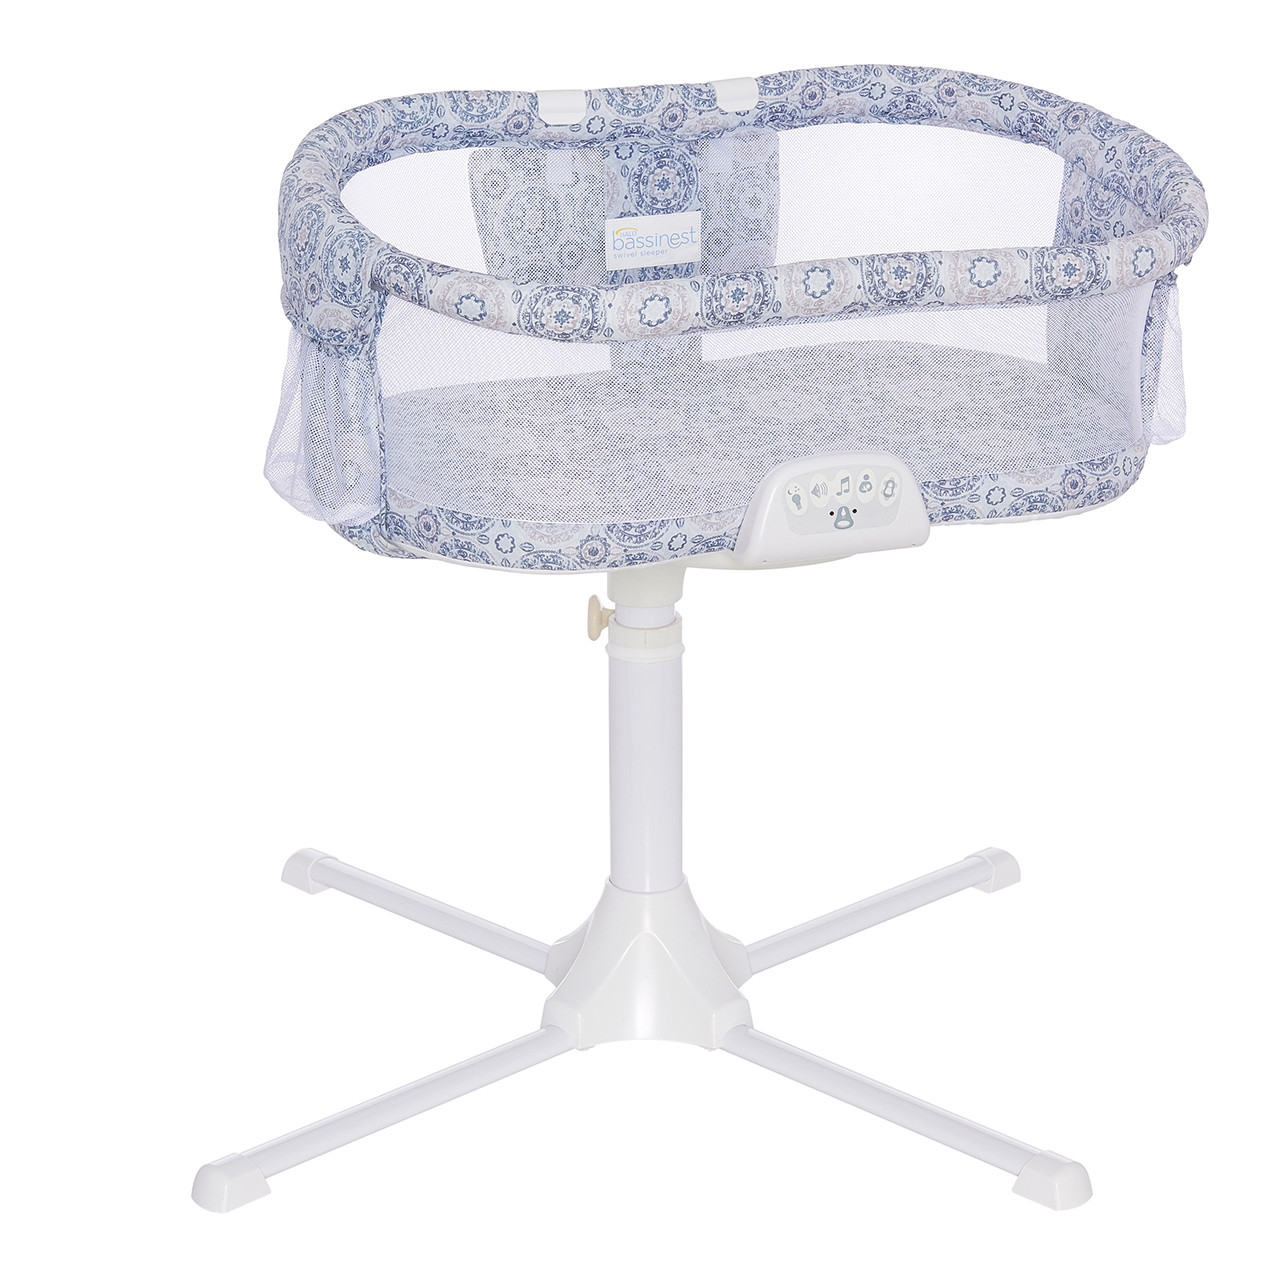 halo bassinest swivel sleeper bedside bassinet for baby